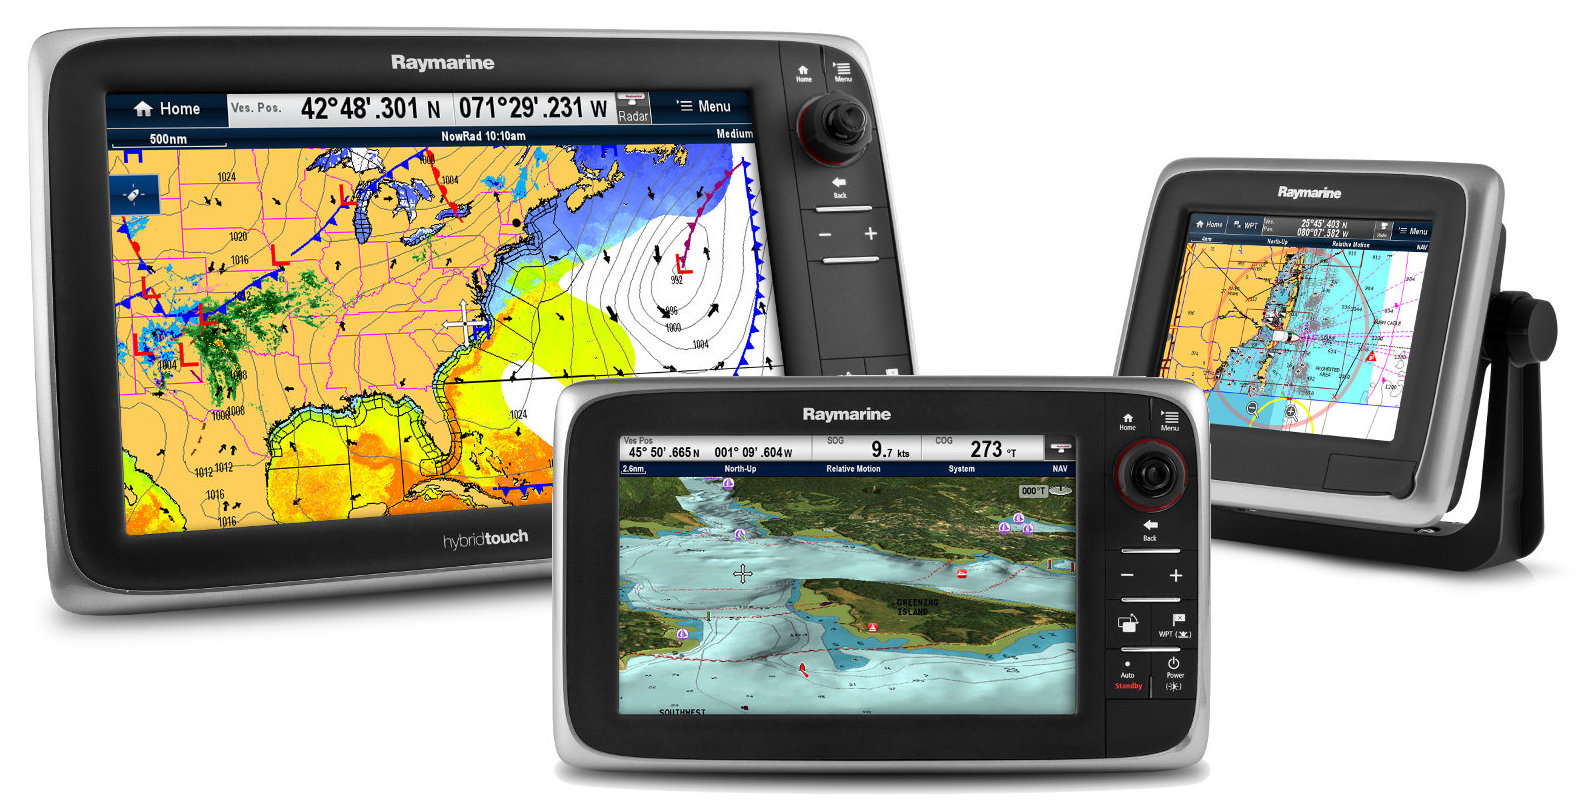 Raymarine A C And E Series Plotters With Ais Over Nmea2000 Gps Wiring Diagram Digital Yacht News